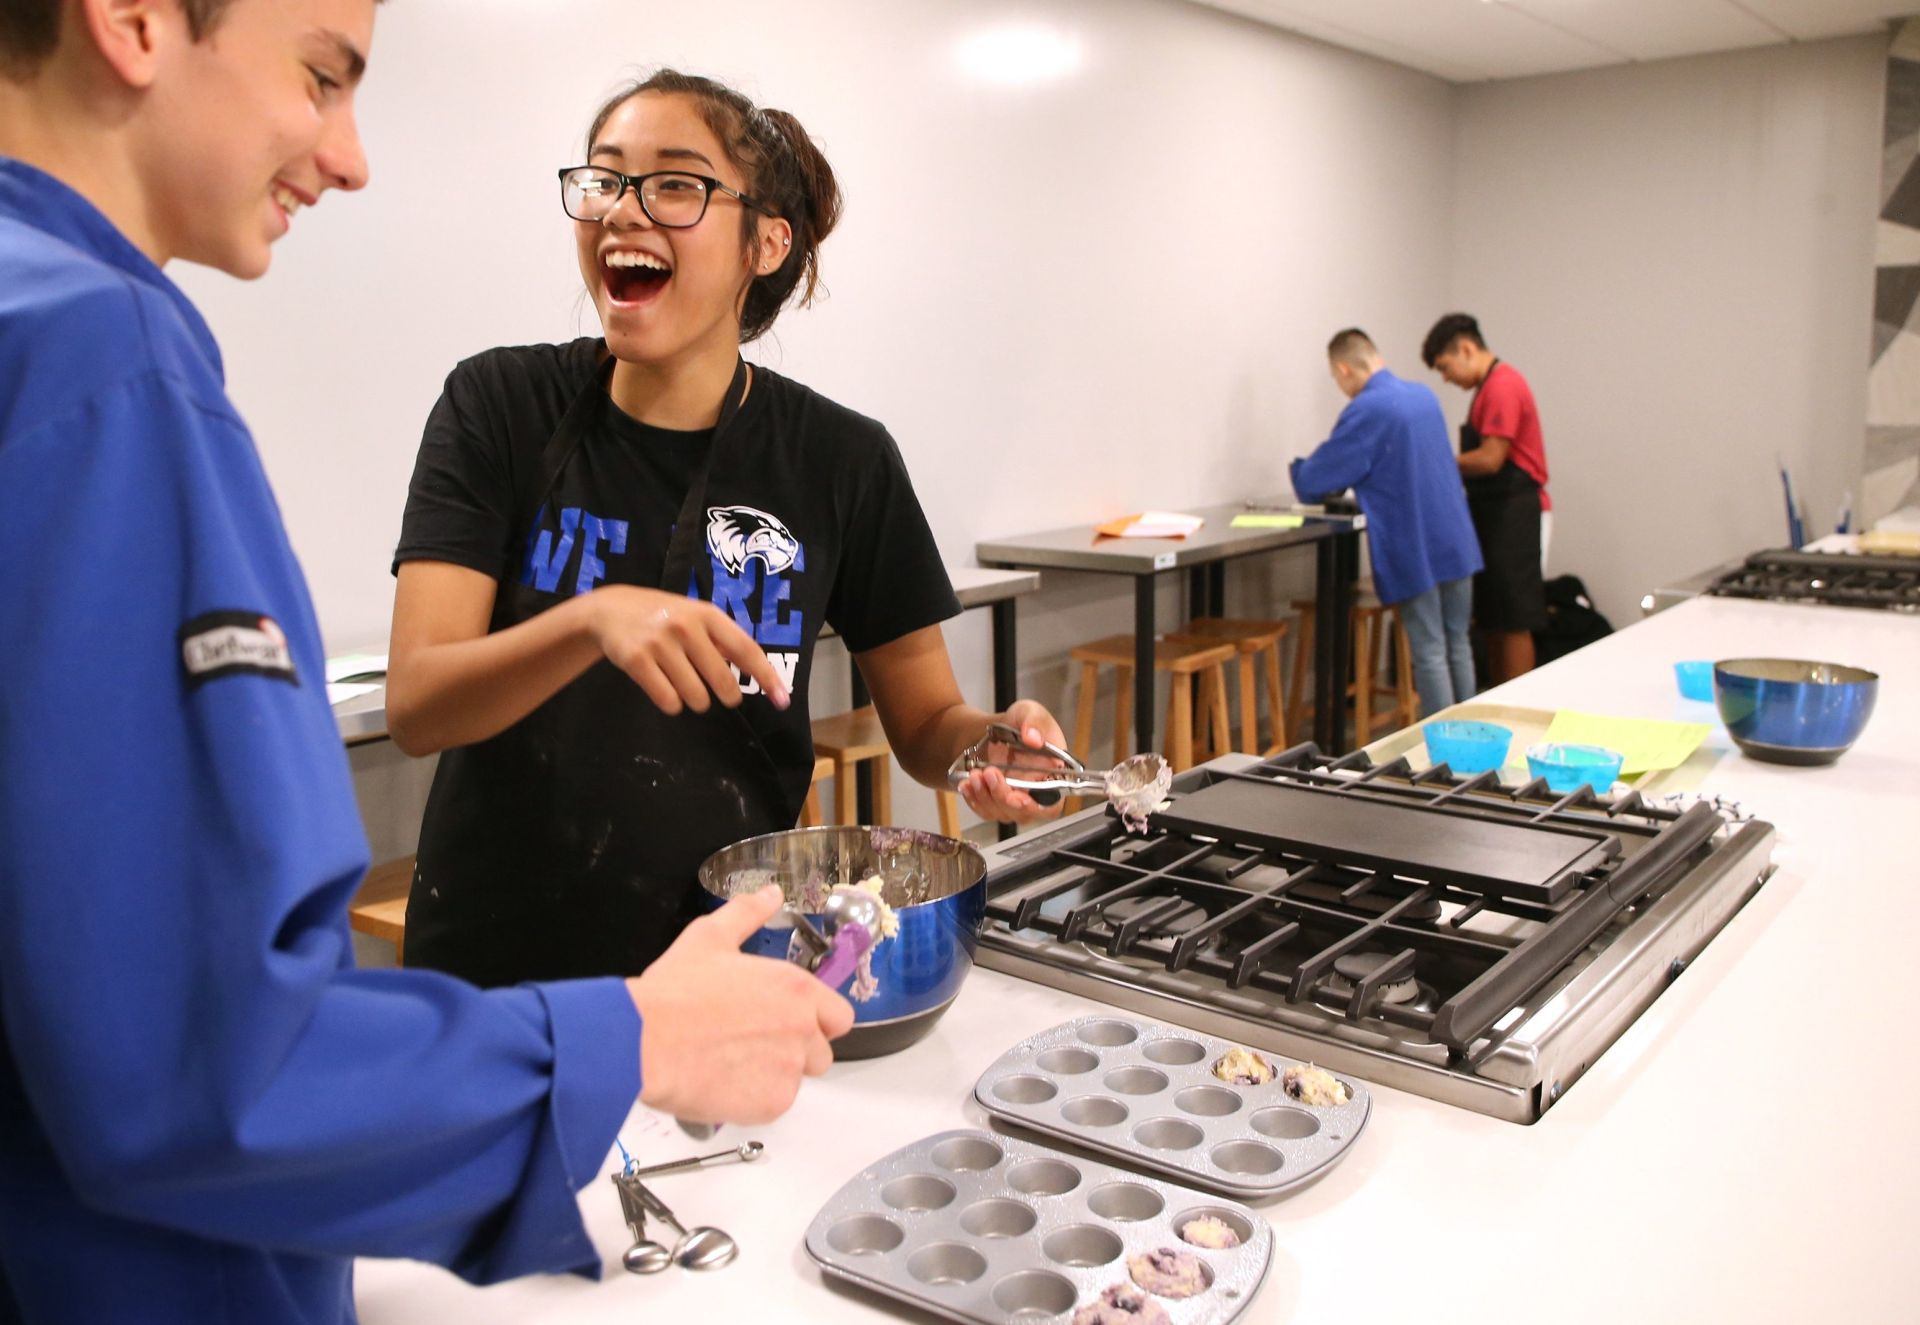 Freshmen students preparing blueberry muffins in the new culinary lab.